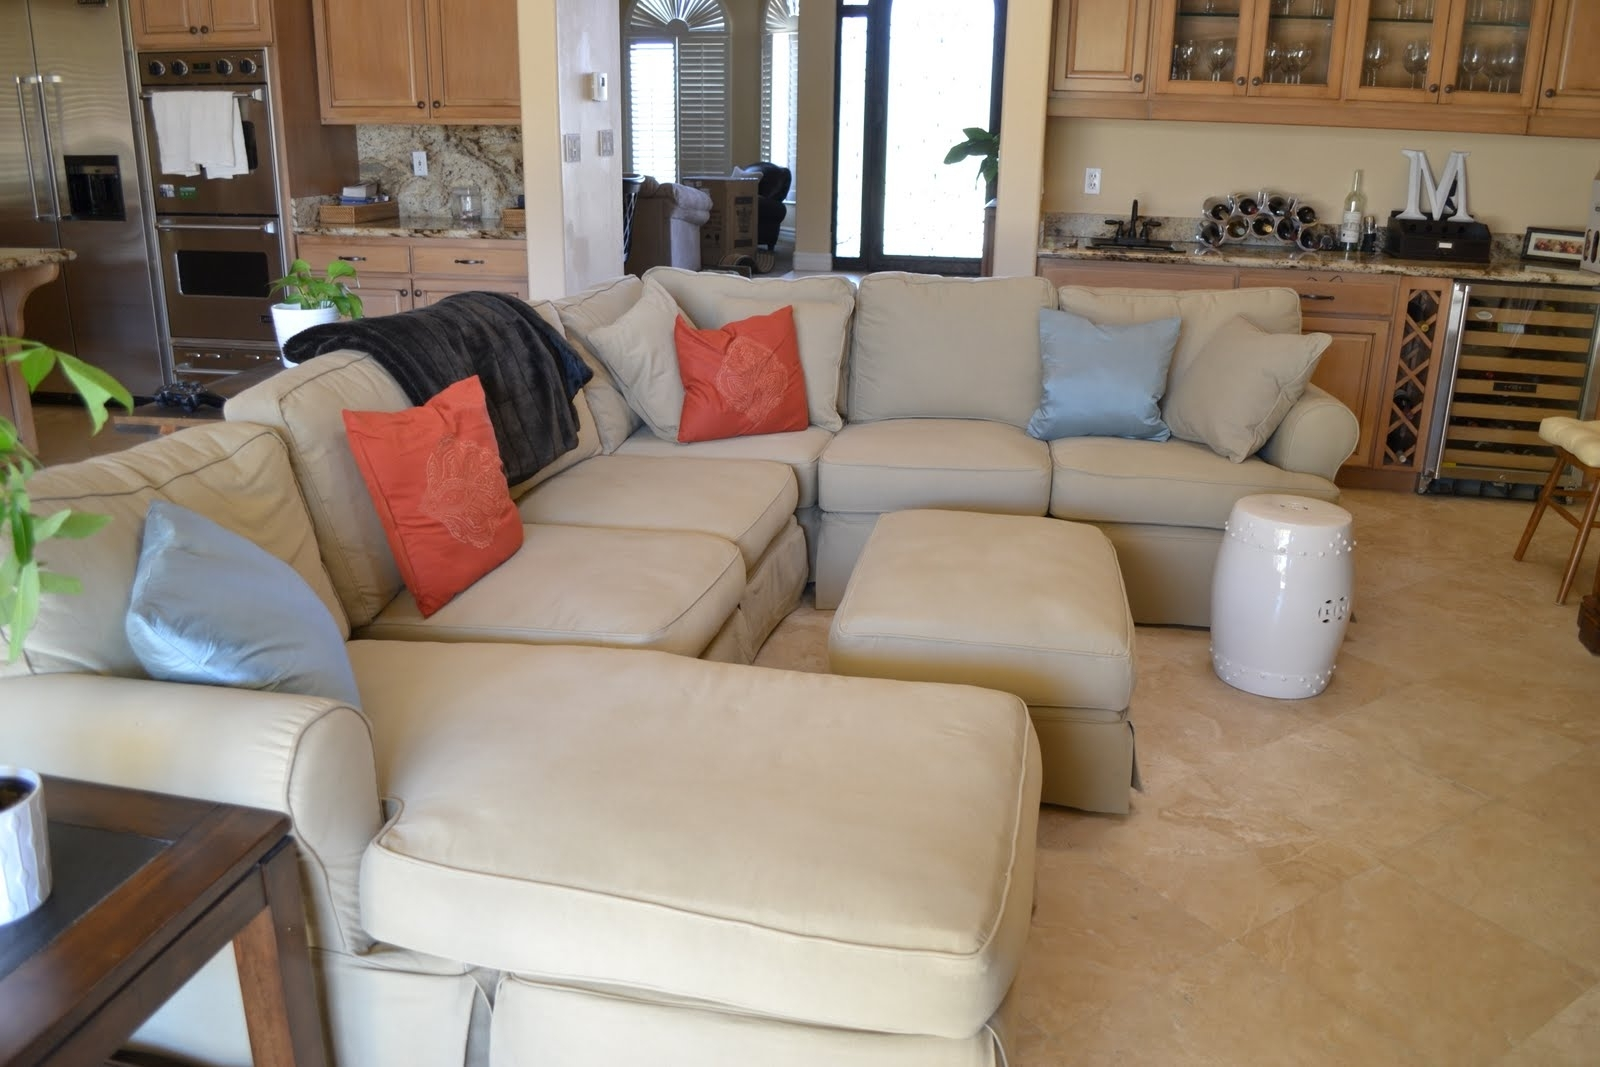 Jcpenney Sectional Sofas Within Trendy 3 Piece Sectional Slipcovers — Cabinets, Beds, Sofas And (Gallery 1 of 15)